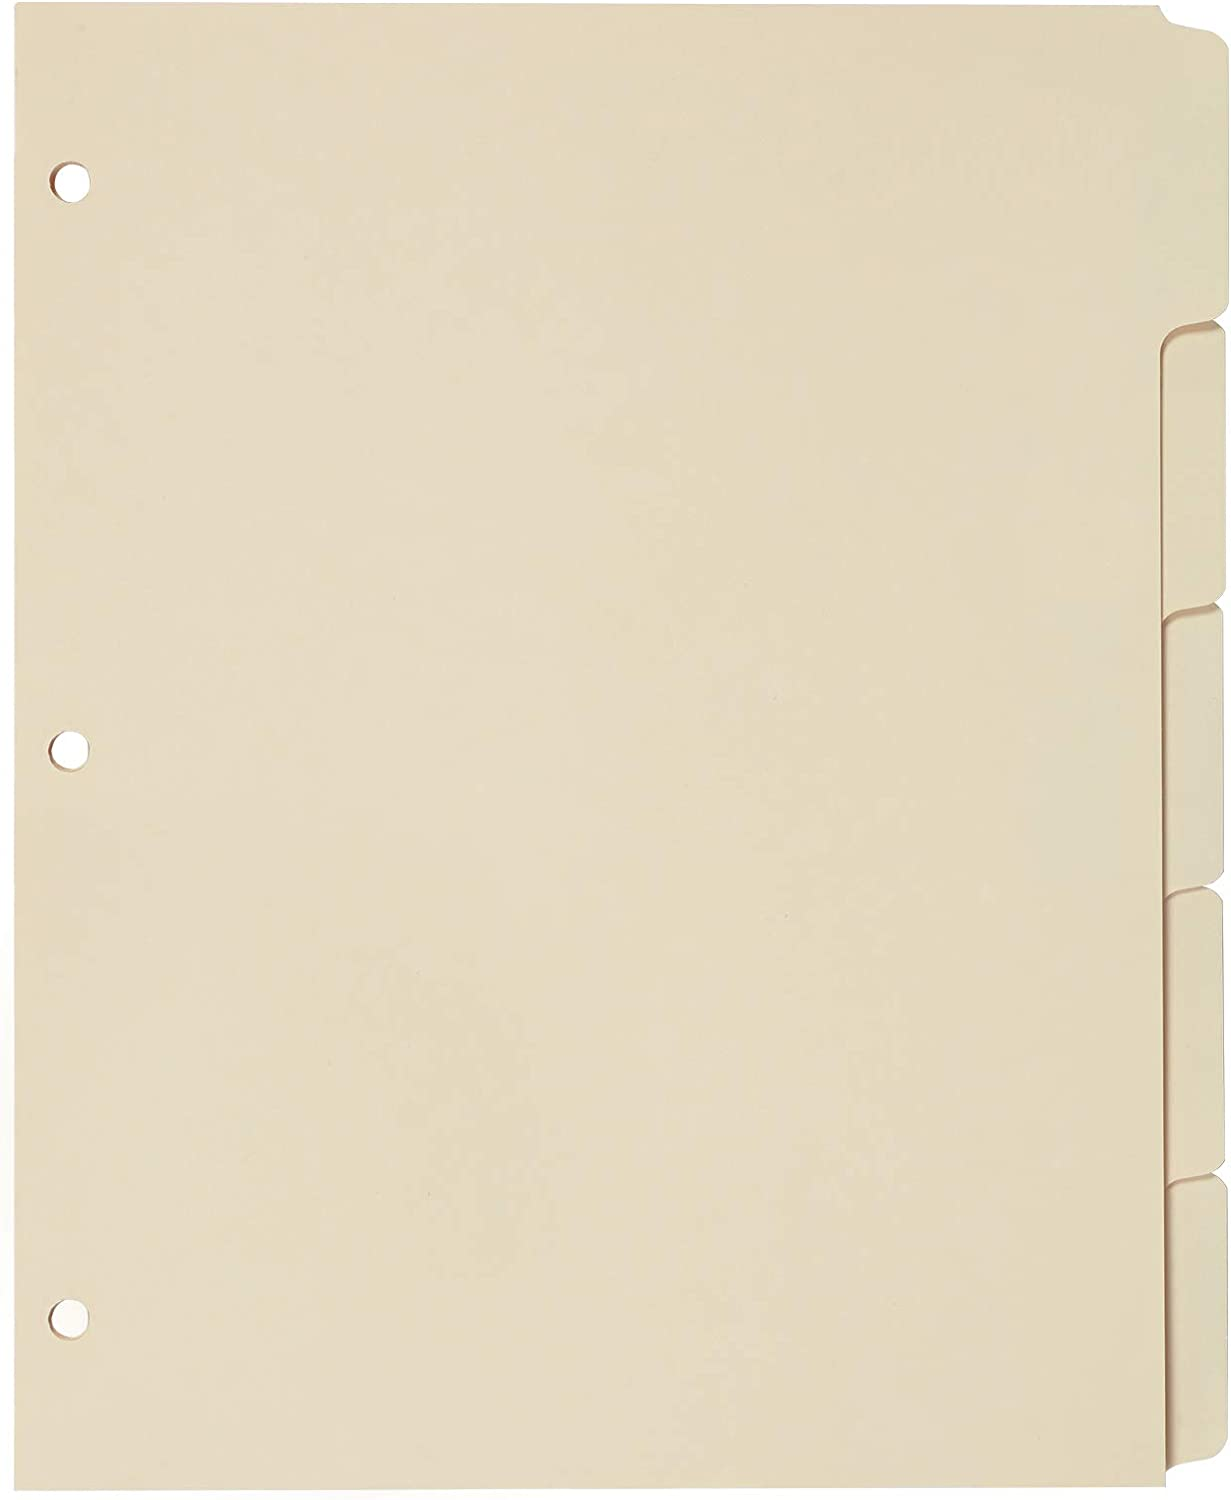 Oxford Blank Write-On Binder Dividers, 5-Tab, 1/5 Cut, 3-Hole Punched, Letter Size, Manila, 20 Sets Per Box (13V)